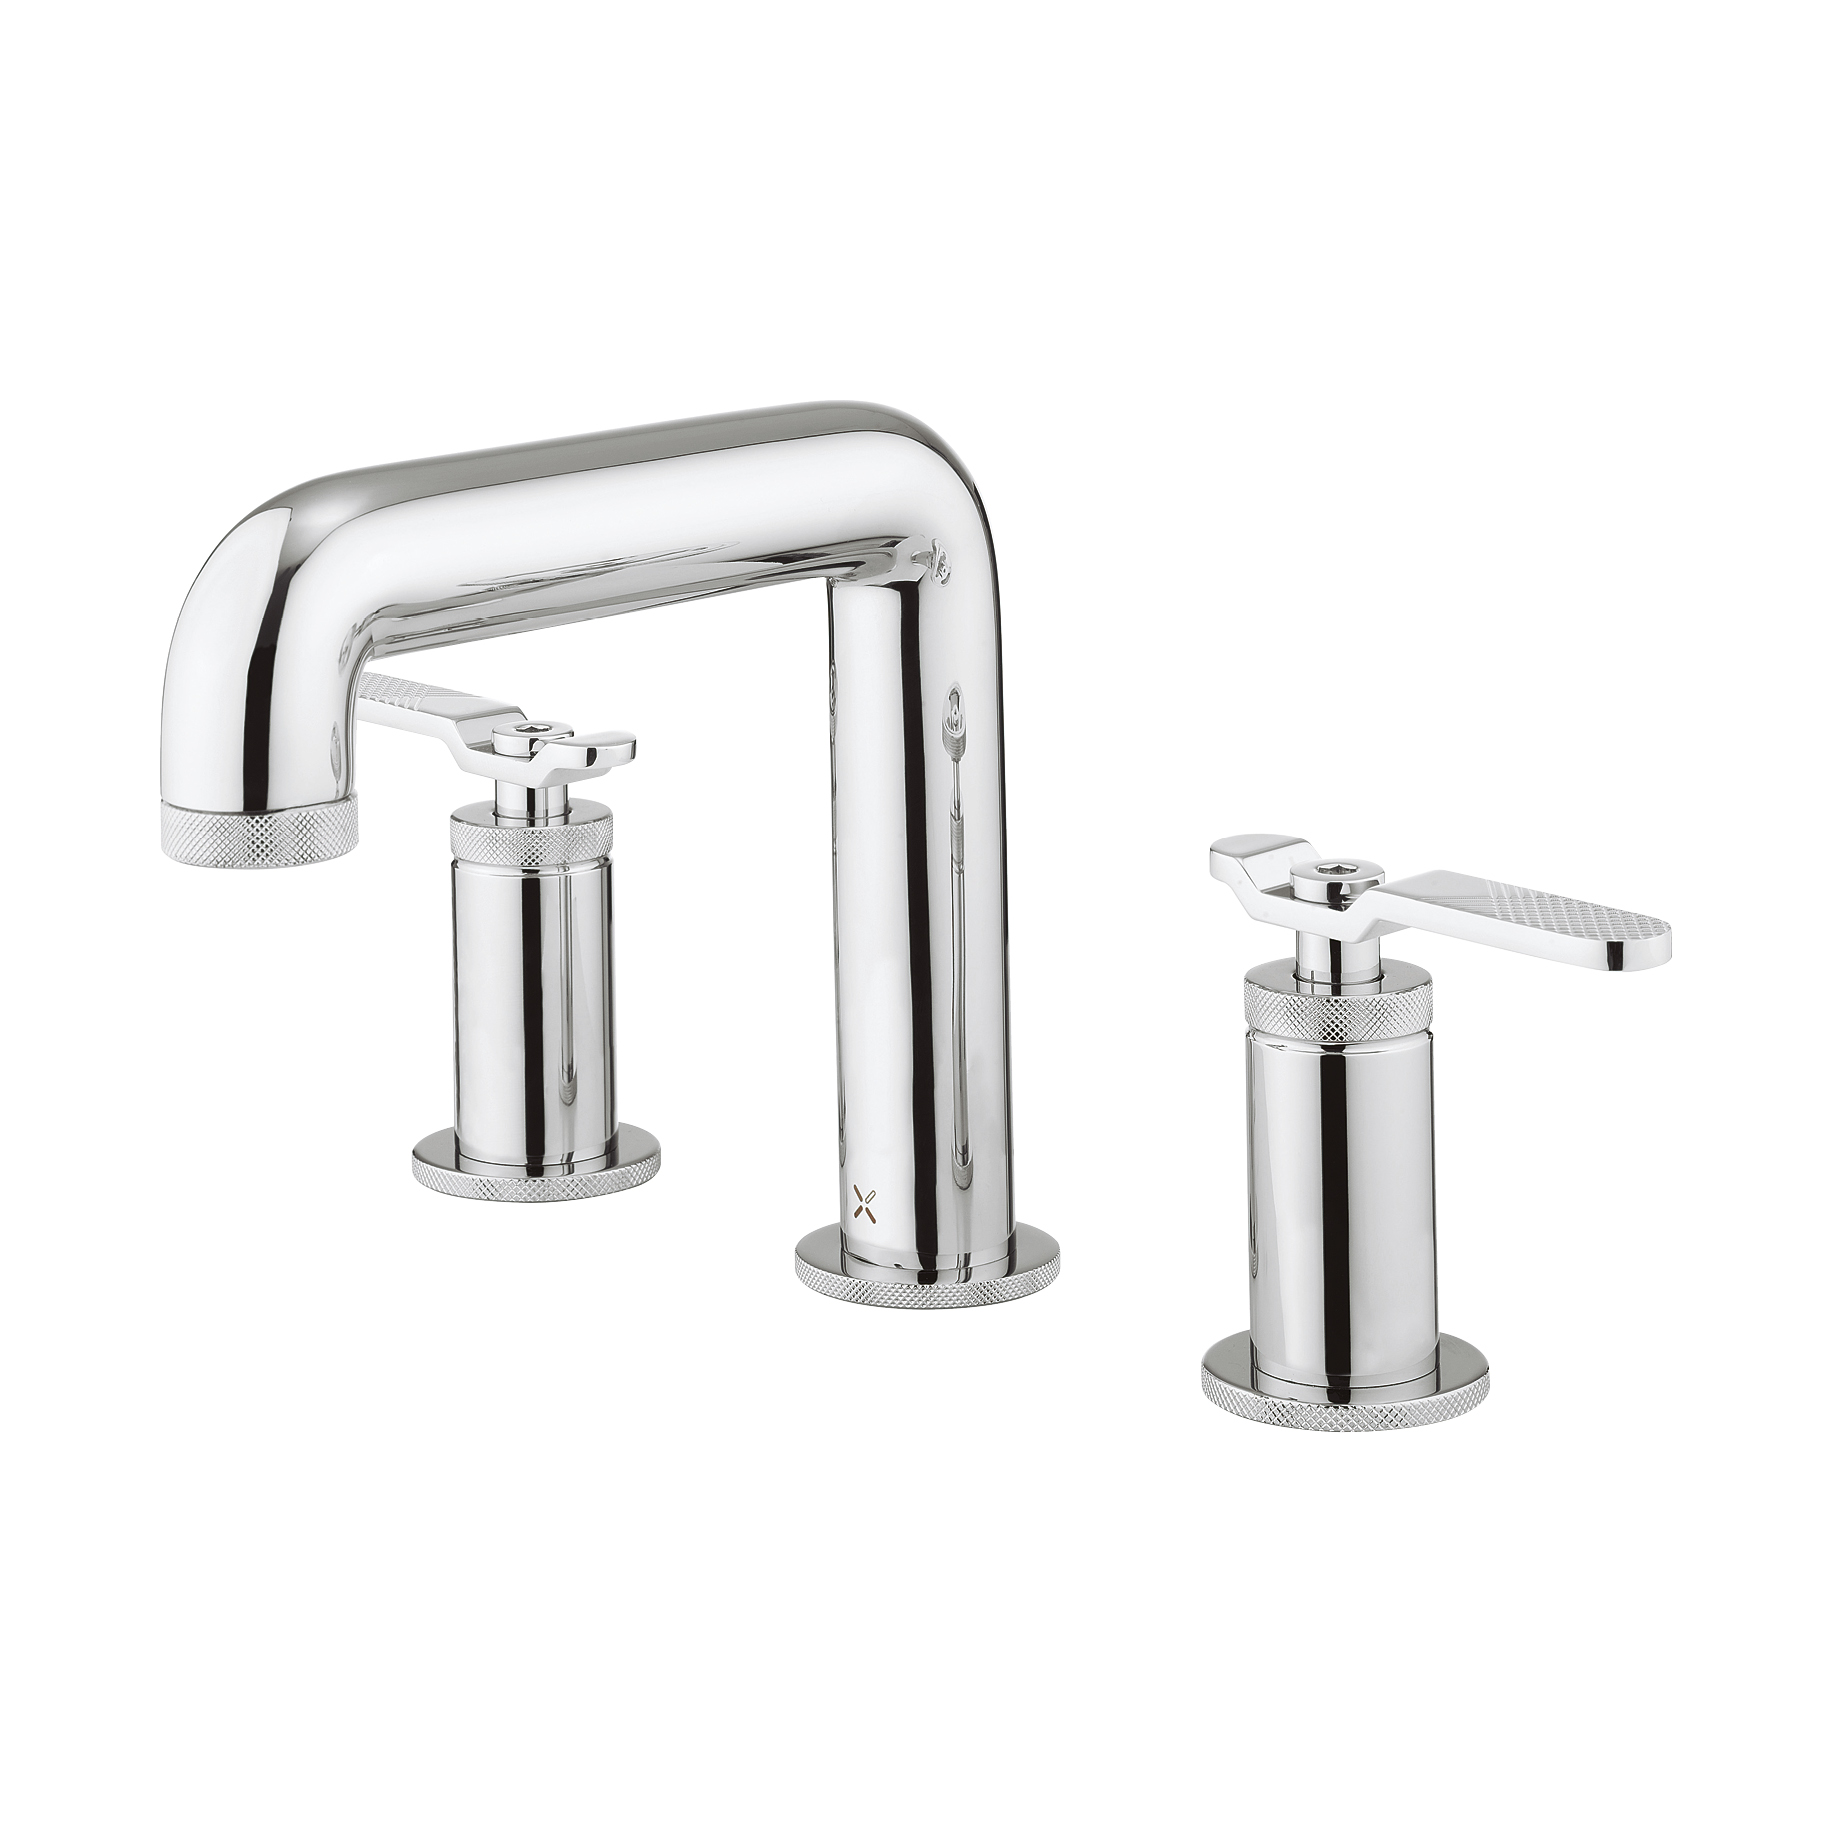 UNION three hole deck mounted basin set levers in Basin Taps ...